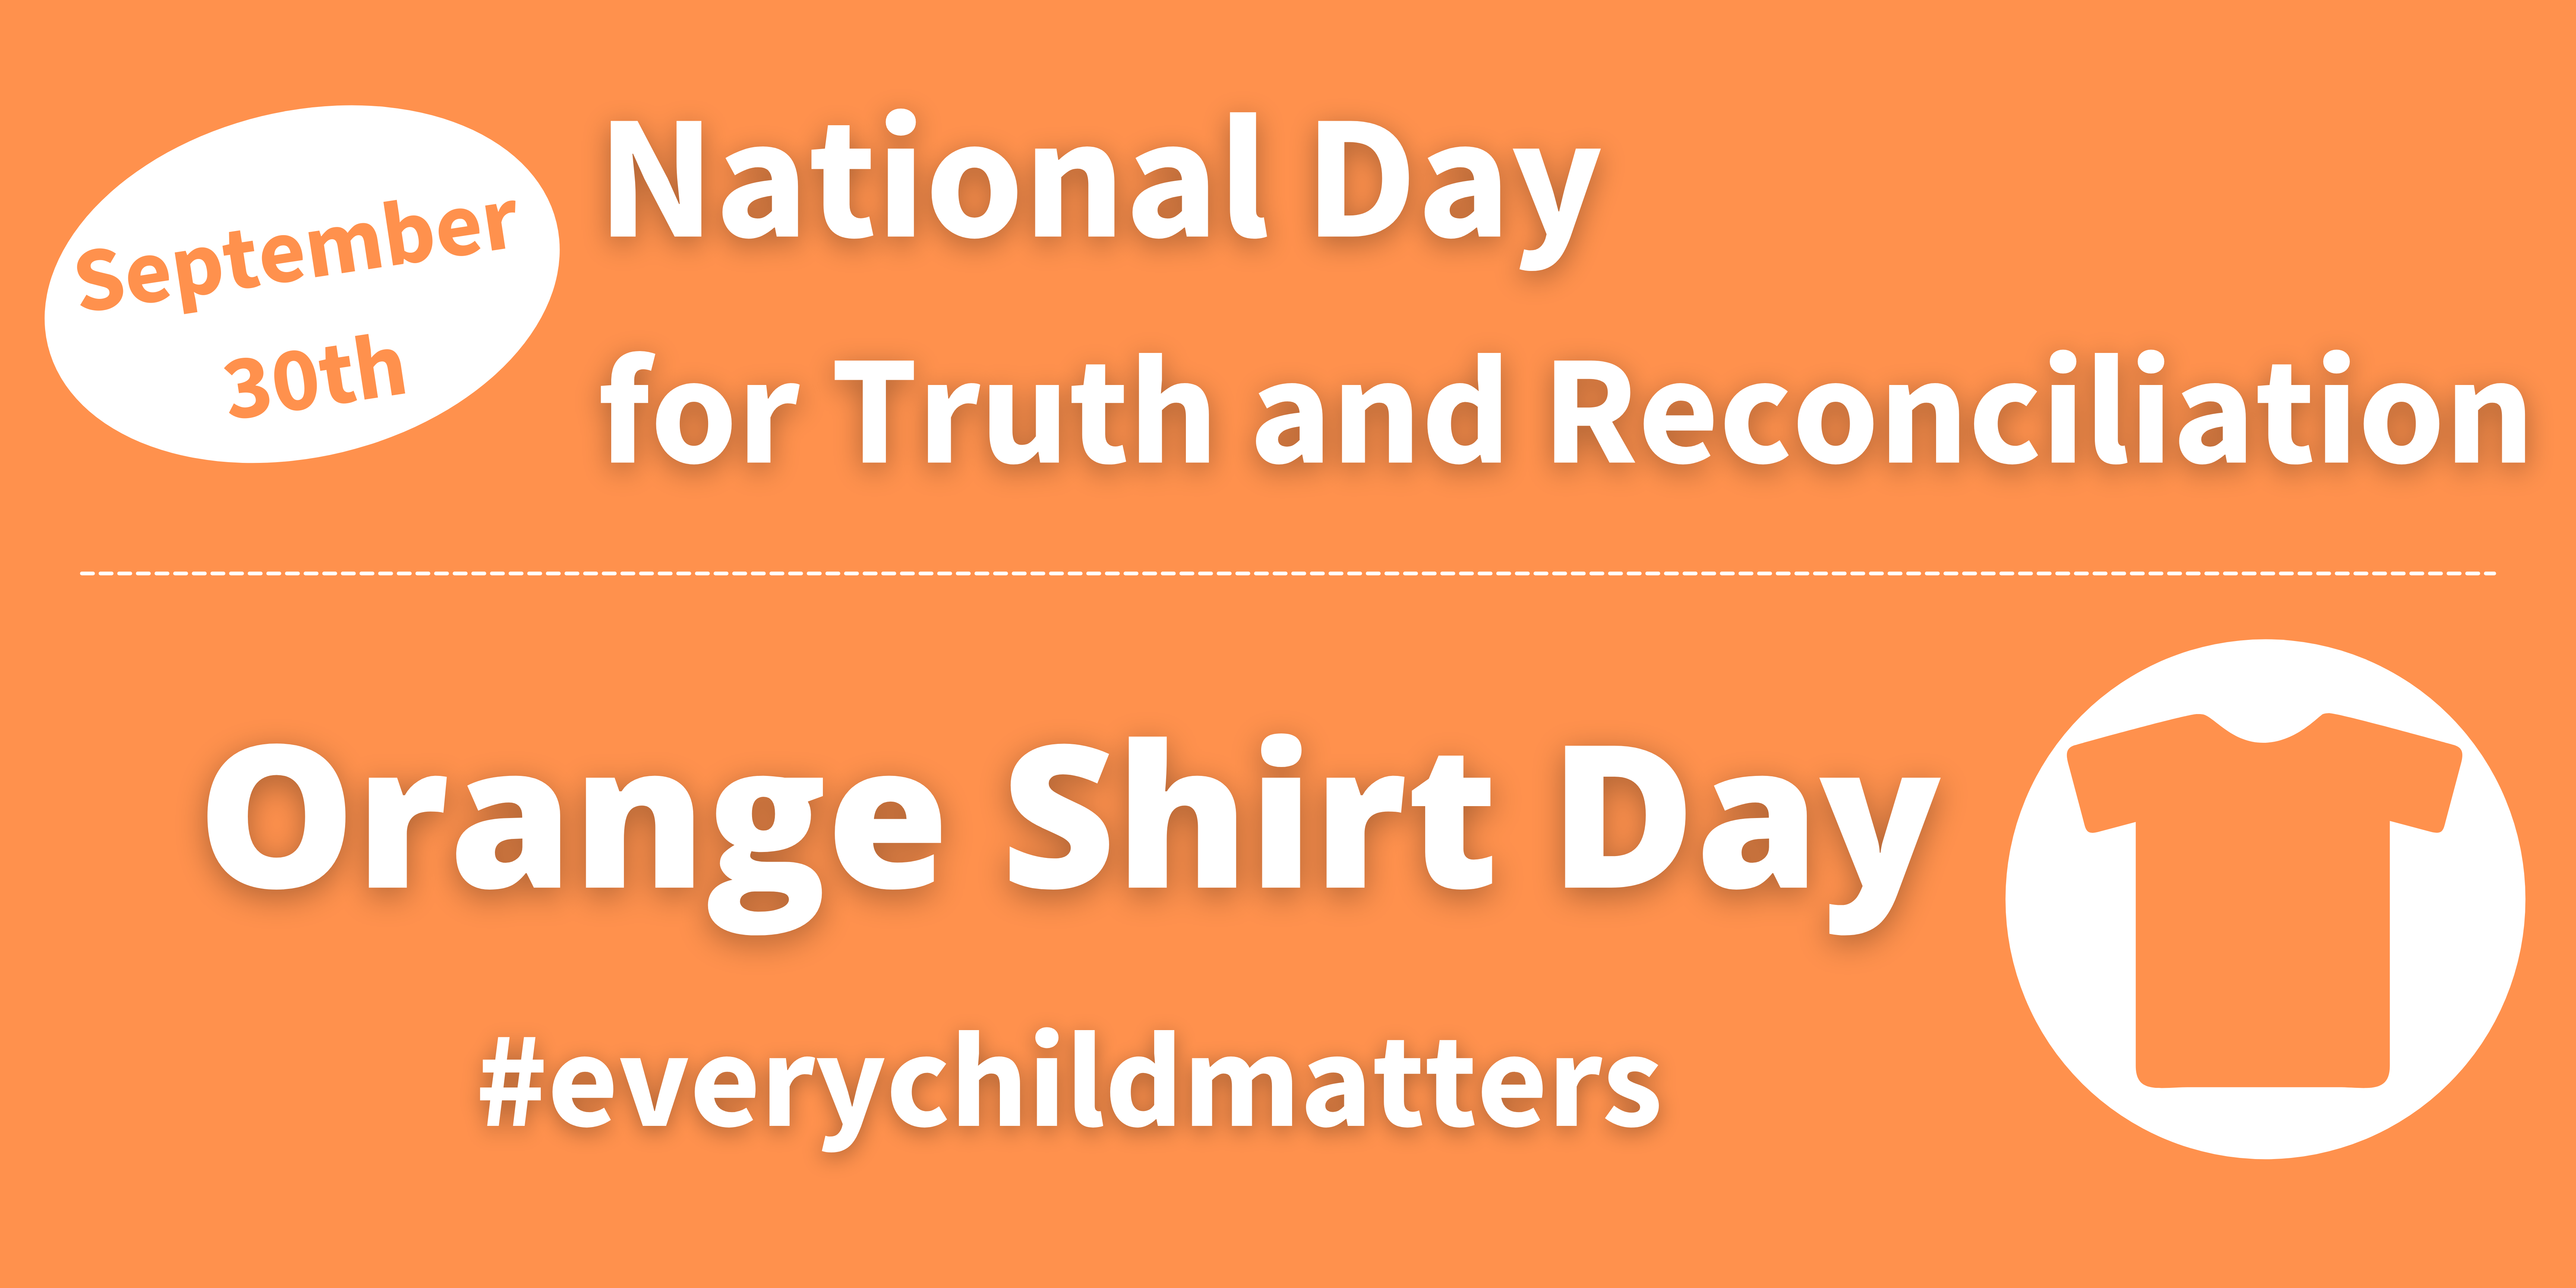 September 30th National Day for Truth and Reconciliation Orange Shirt Day